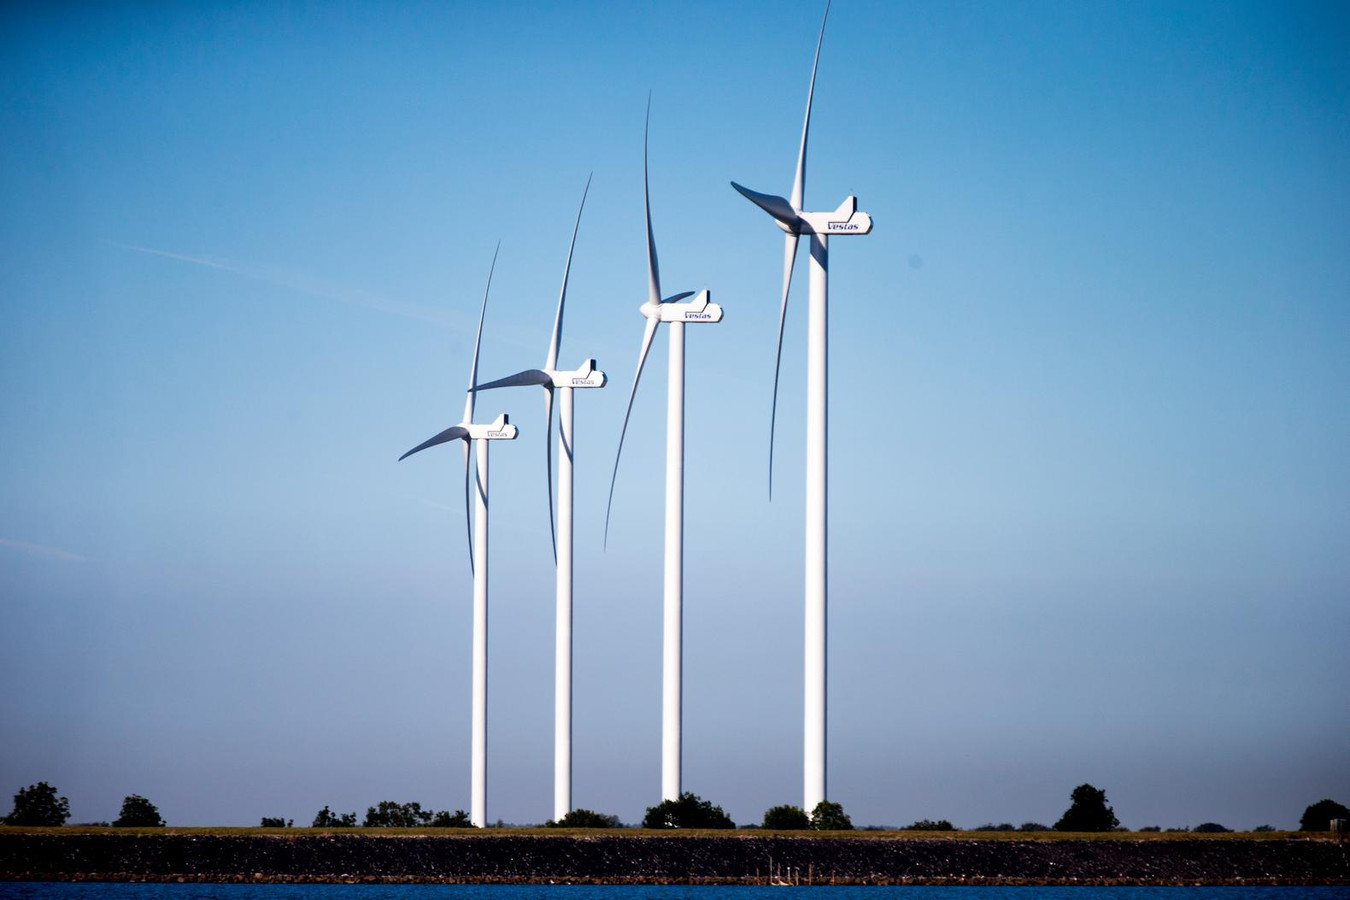 Windmolens. Foto ter illustratie.